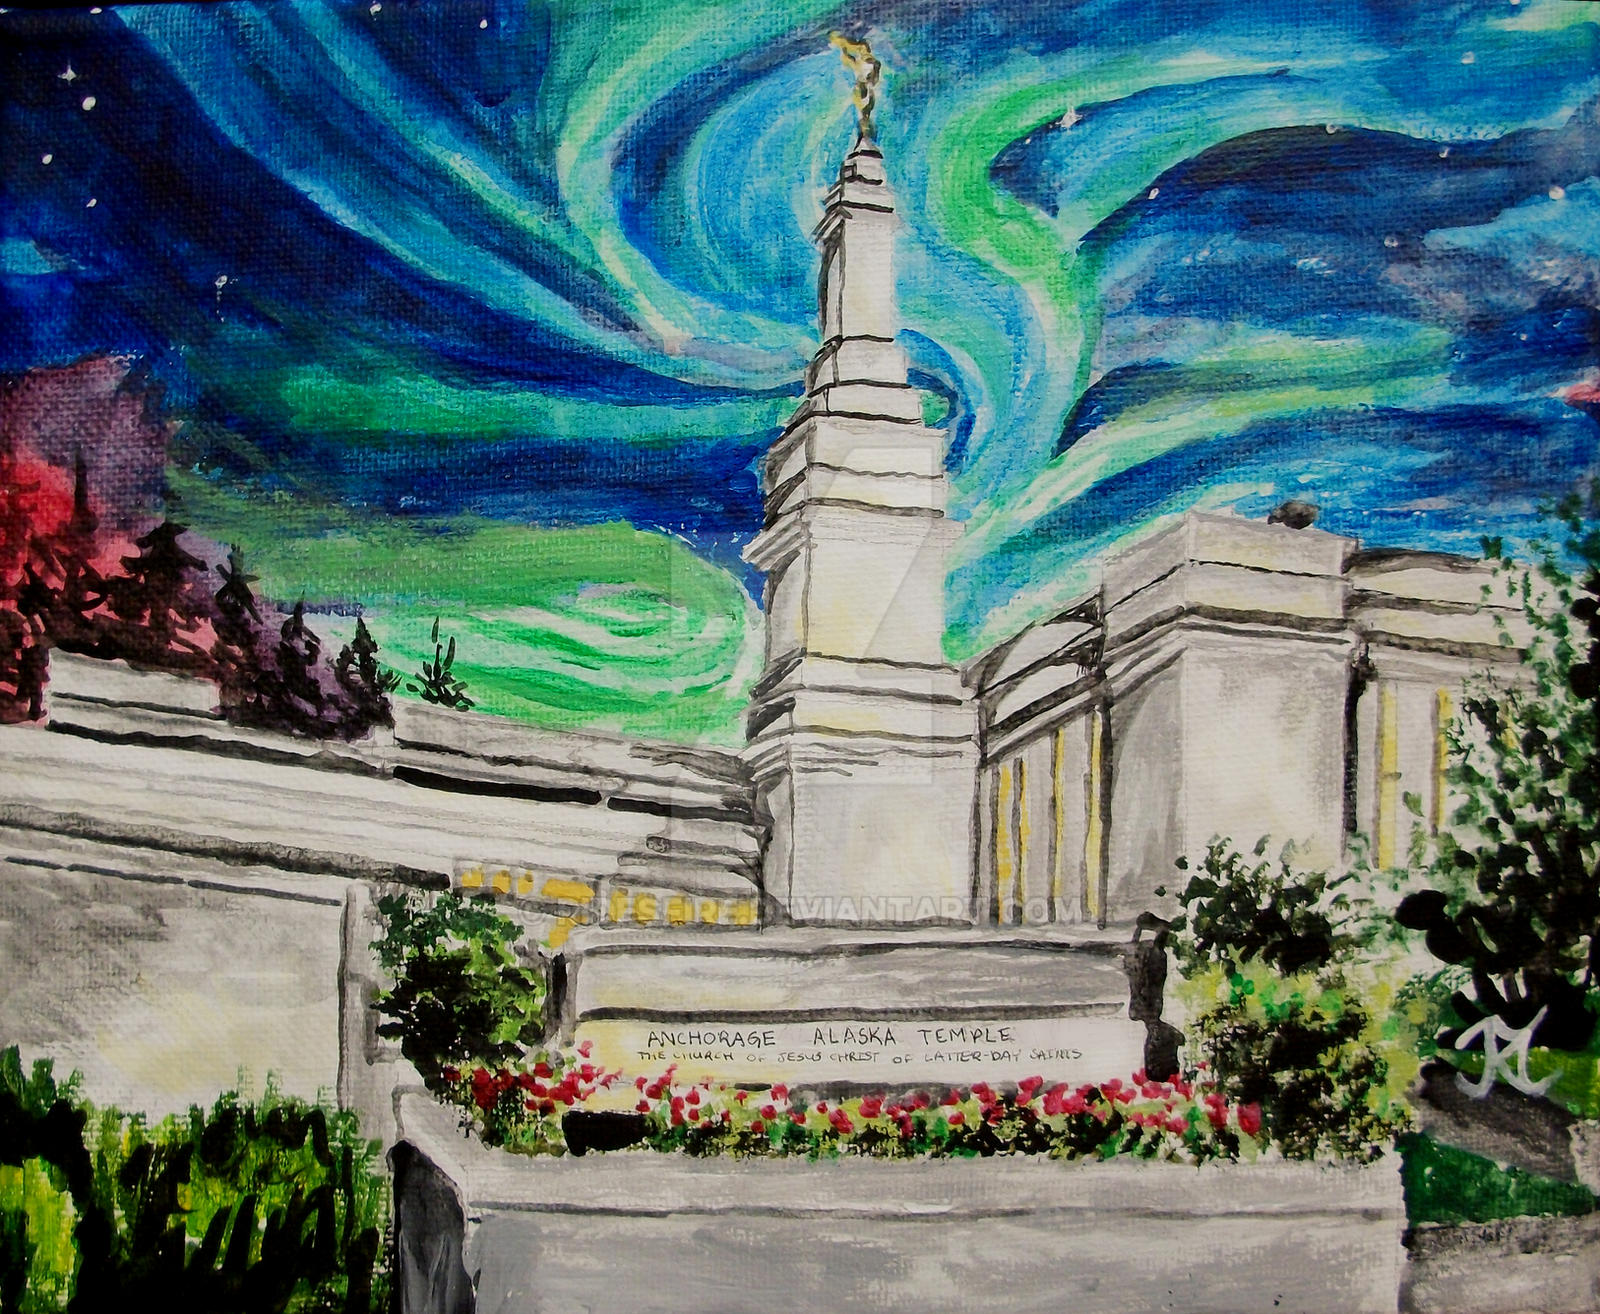 Co color art printing anchorage alaska -  Northern Lights Over Anchorage Alaska Lds Temple By Ridesfire